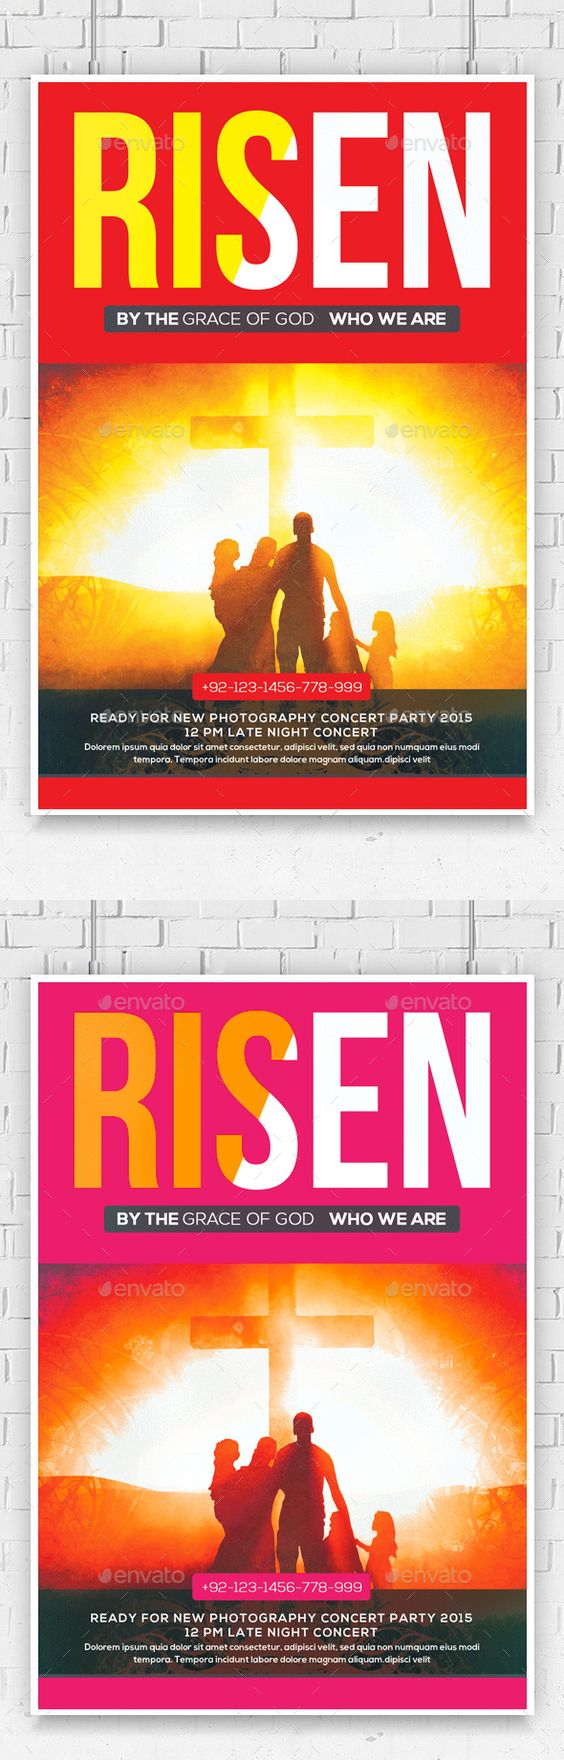 risen church flyer template flyers photoshop and flyer template risen church flyer template photoshop psd invitation easter pageant available here rarr